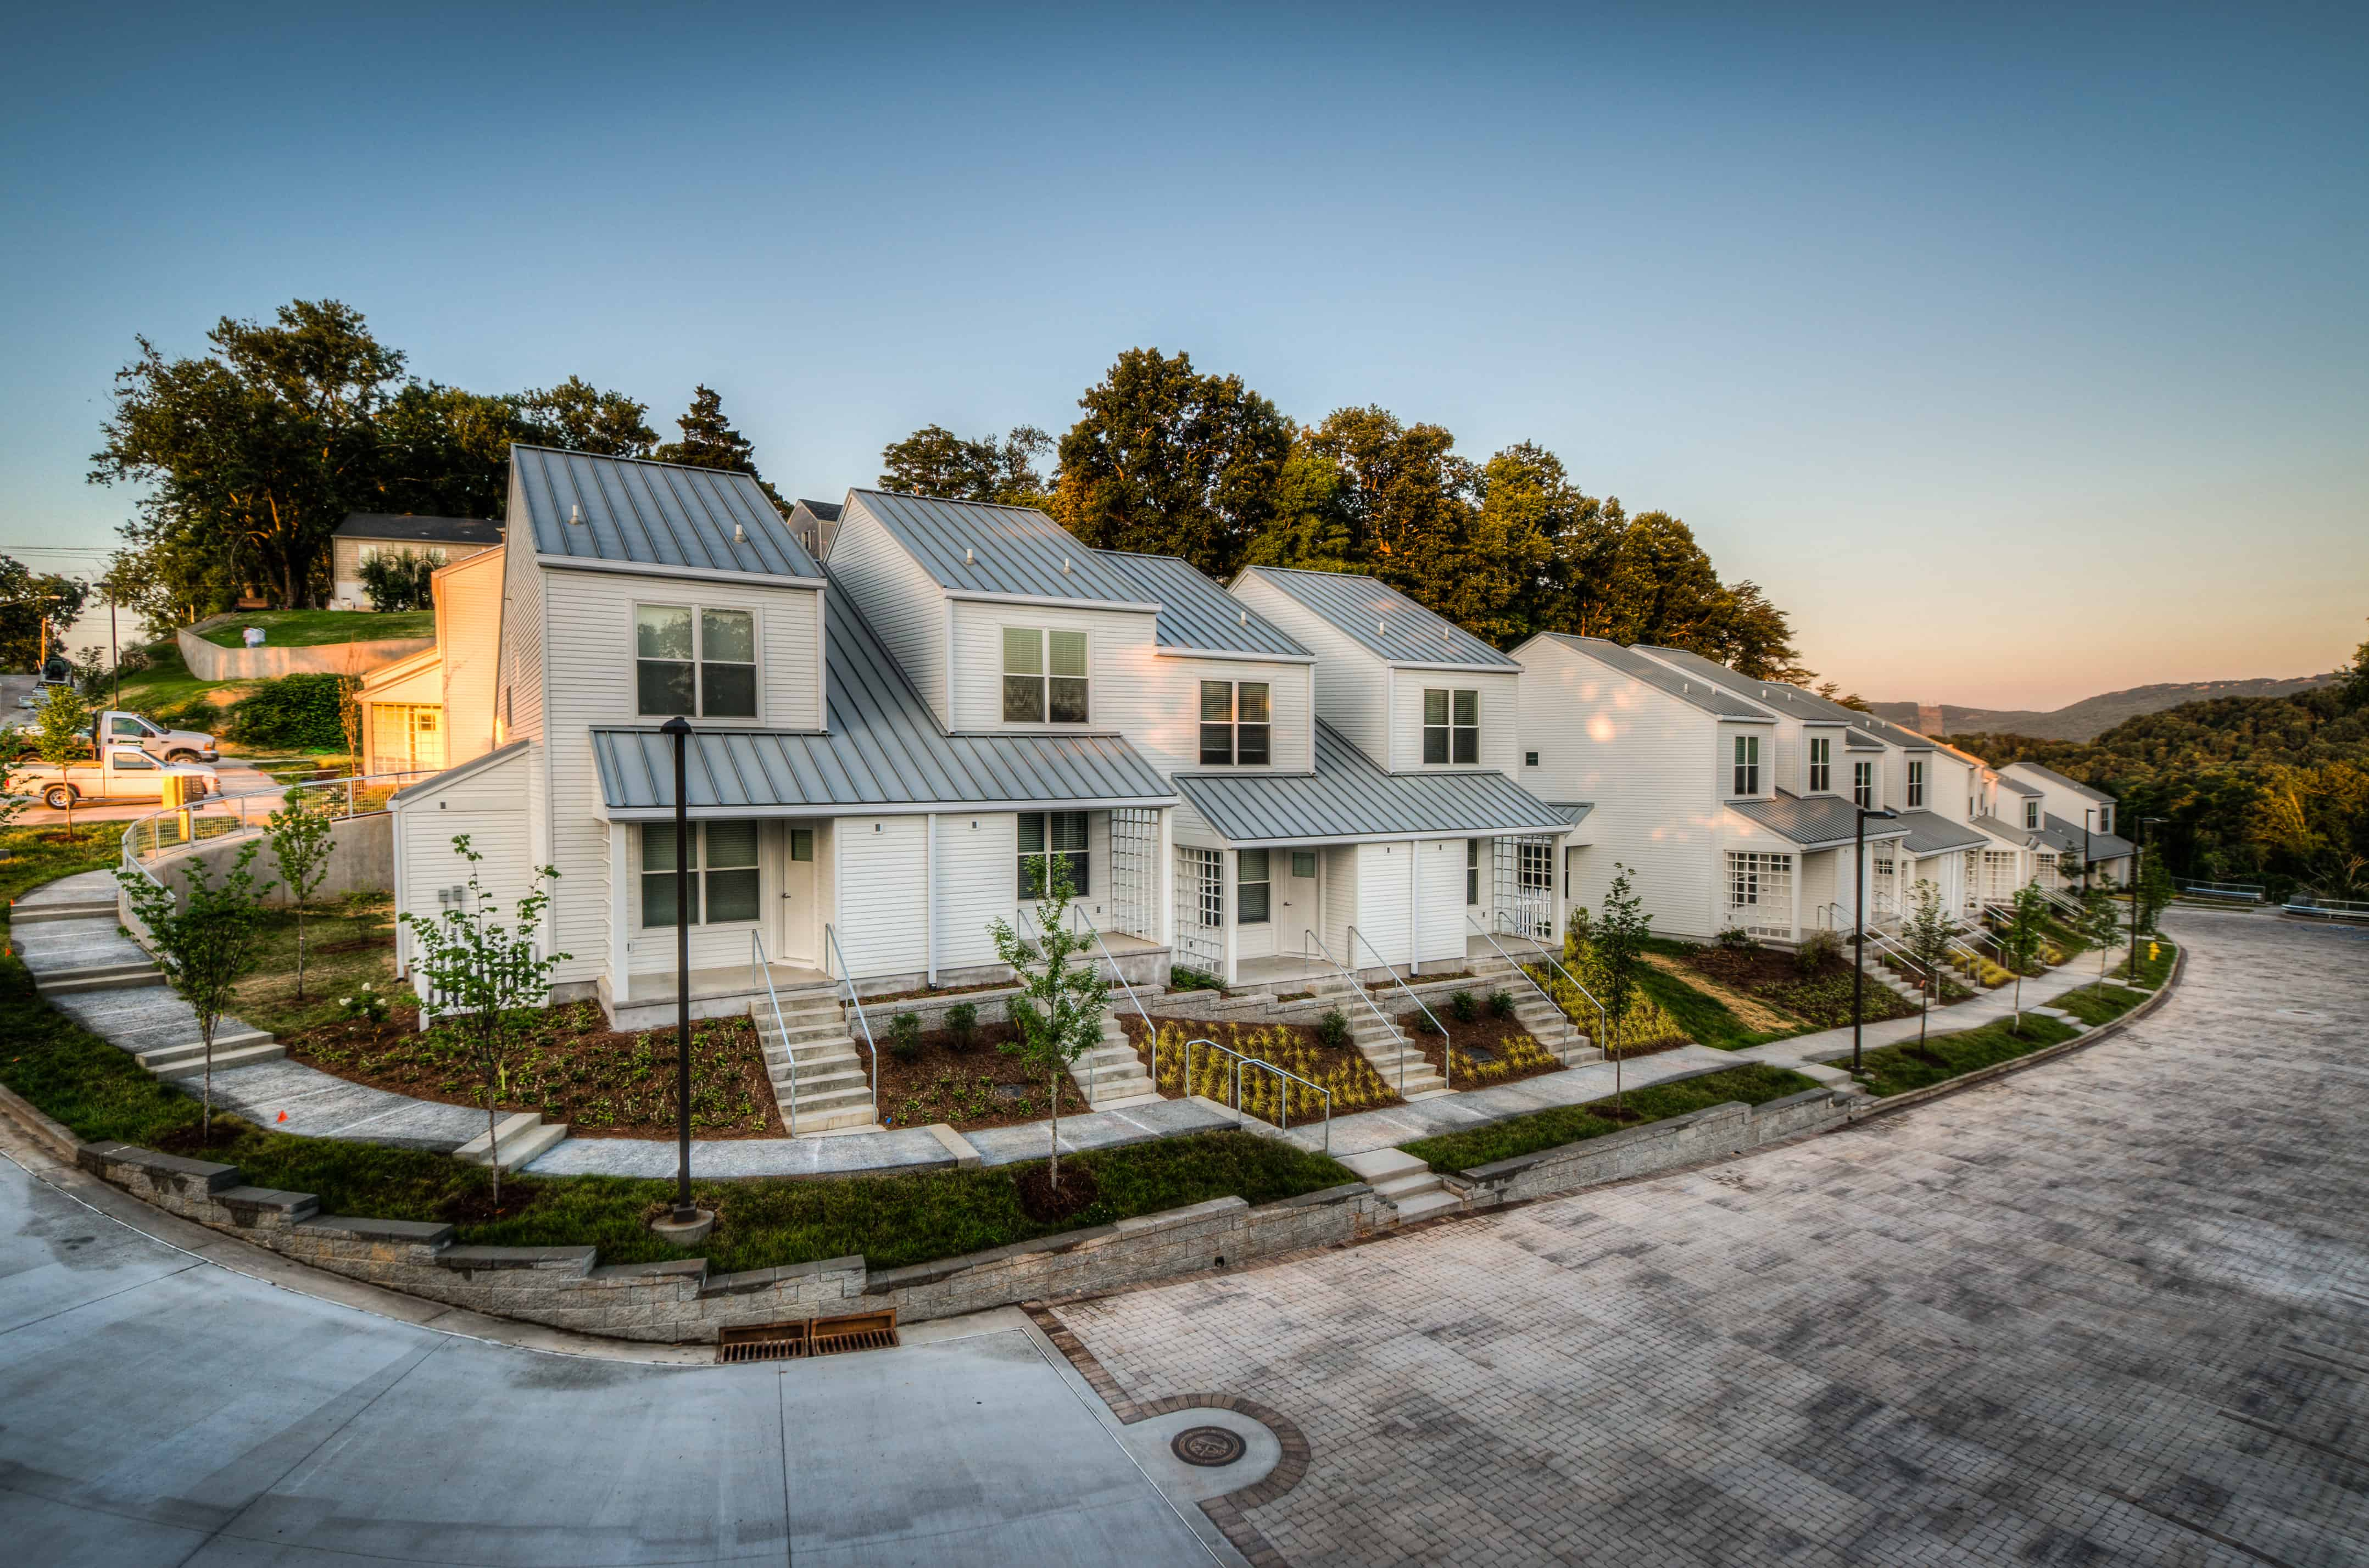 Fairmount Avenue Townhomes